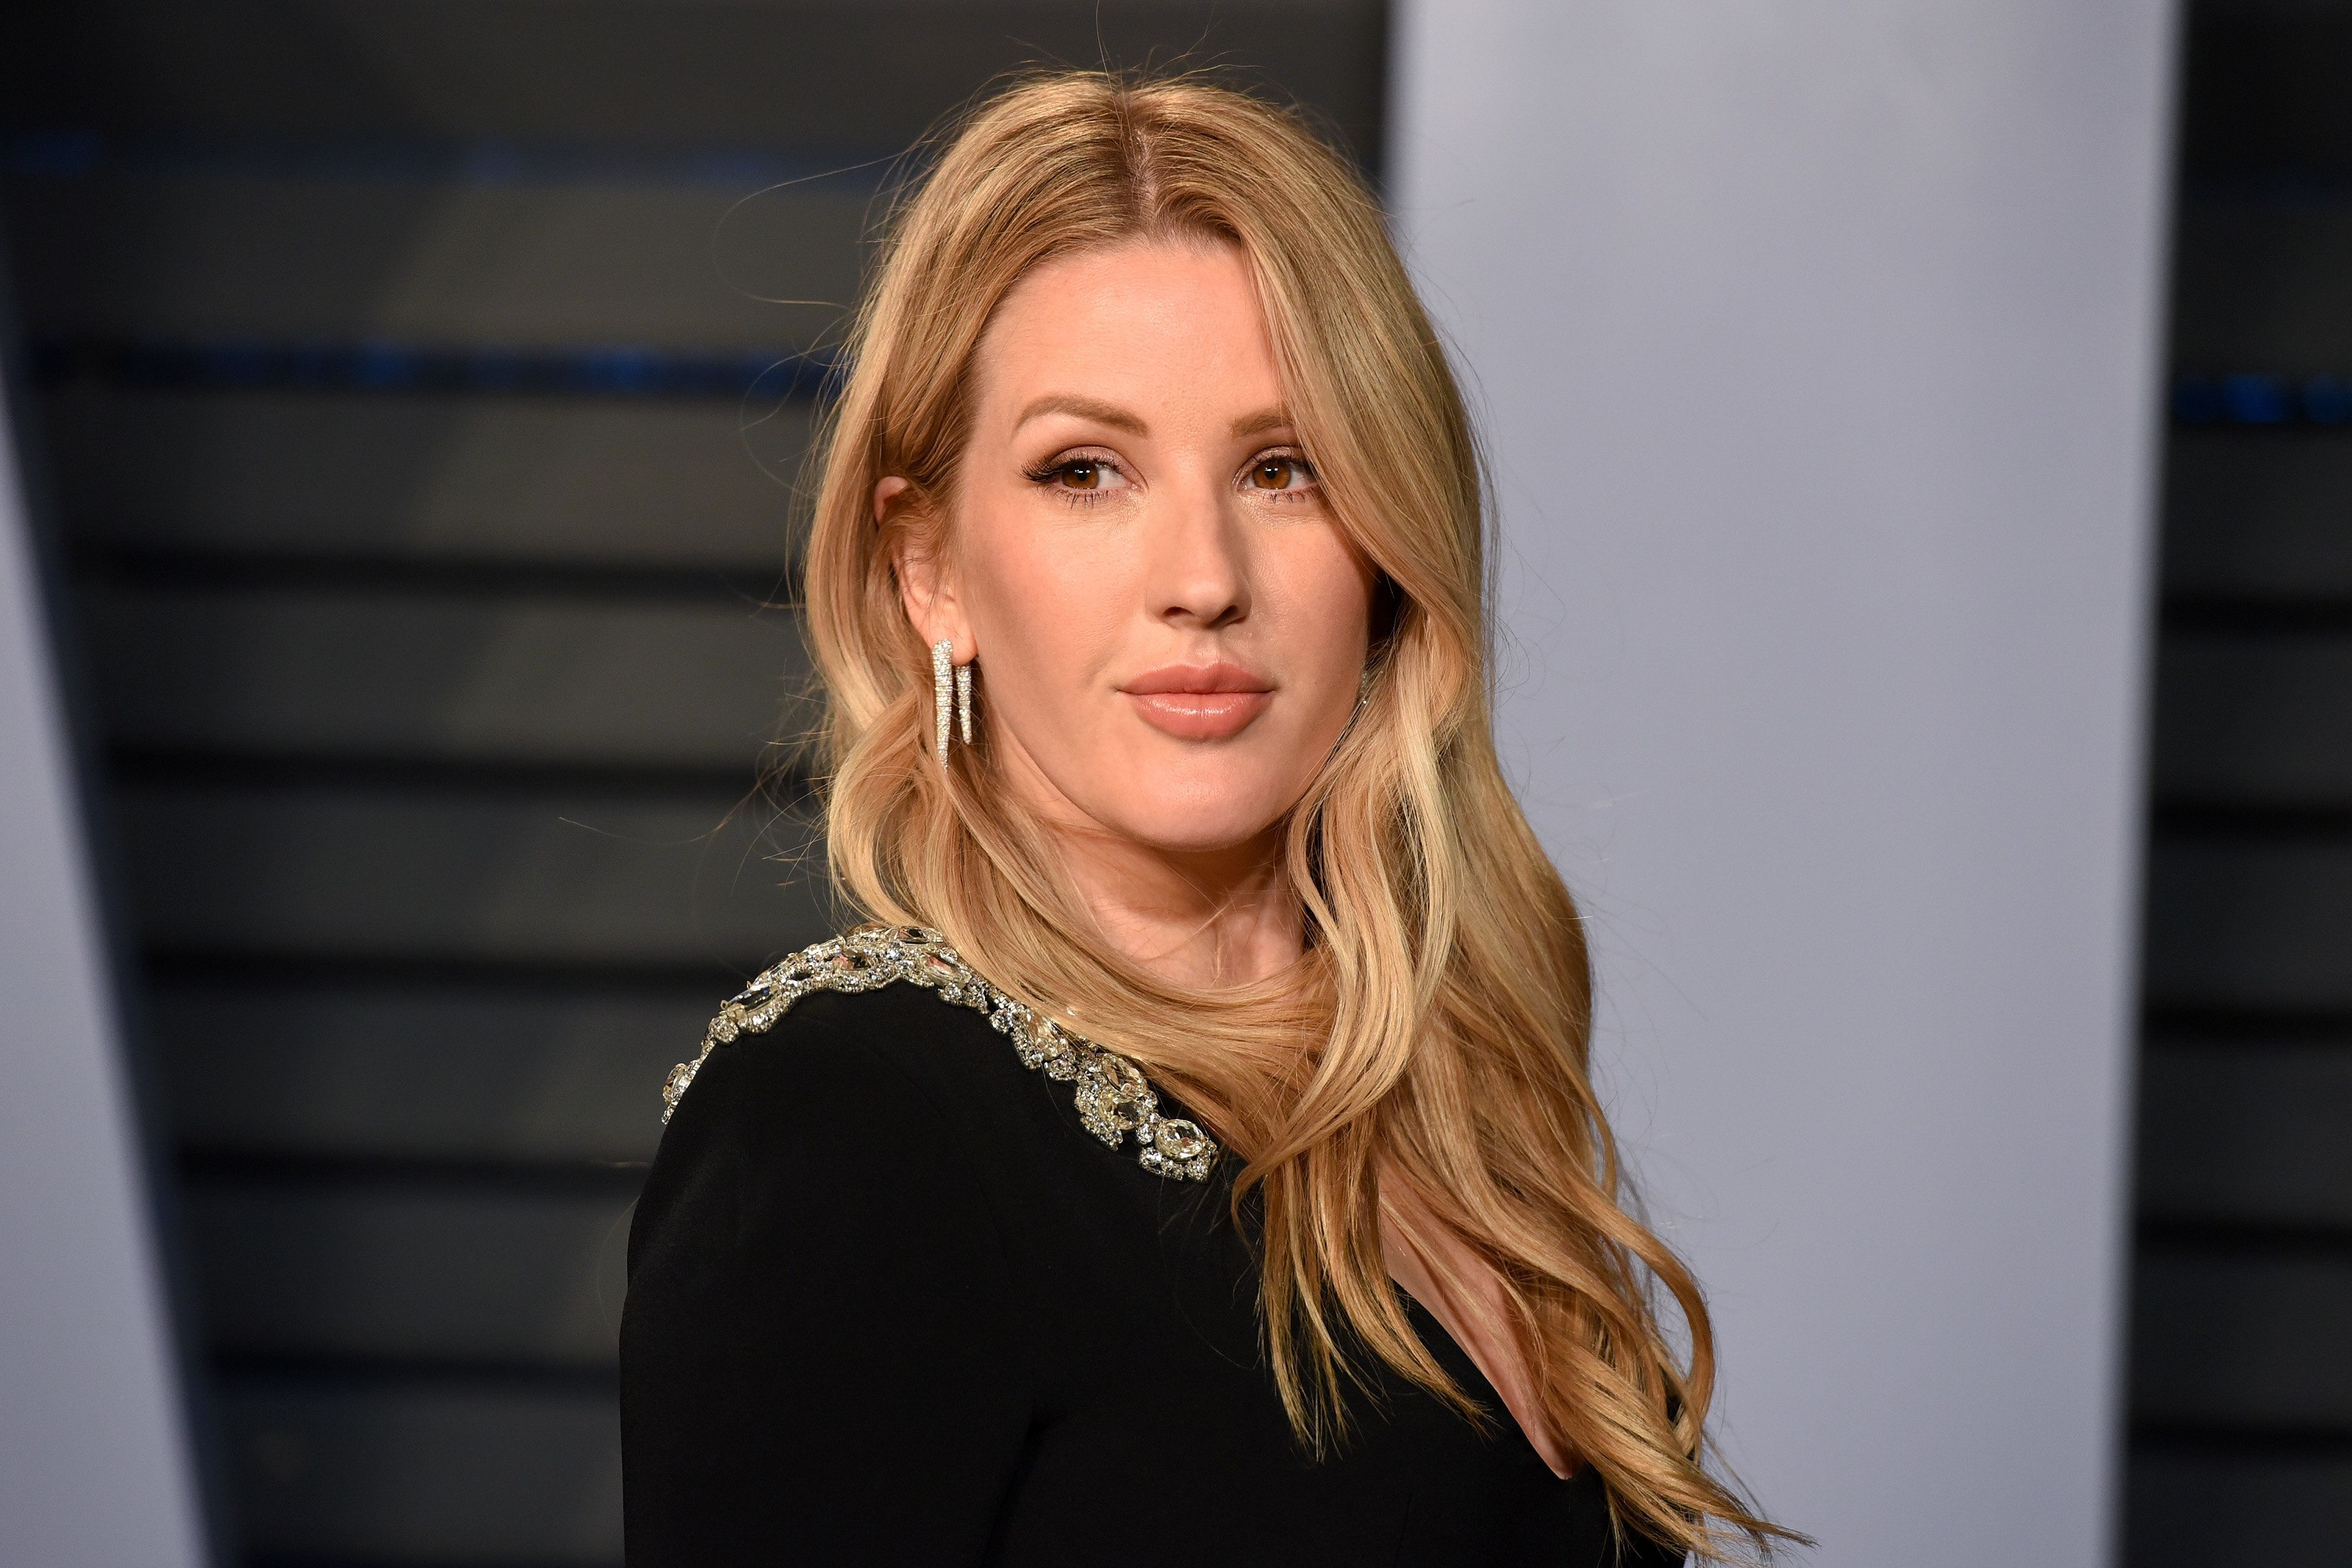 BEVERLY HILLS, CA - MARCH 04:  Ellie Goulding attends the 2018 Vanity Fair Oscar Party Hosted By Radhika Jones - Arrivals at Wallis Annenberg Center for the Performing Arts on March 4, 2018 in Beverly Hills, CA.  (Photo by Presley Ann/Patrick McMullan via Getty Images)